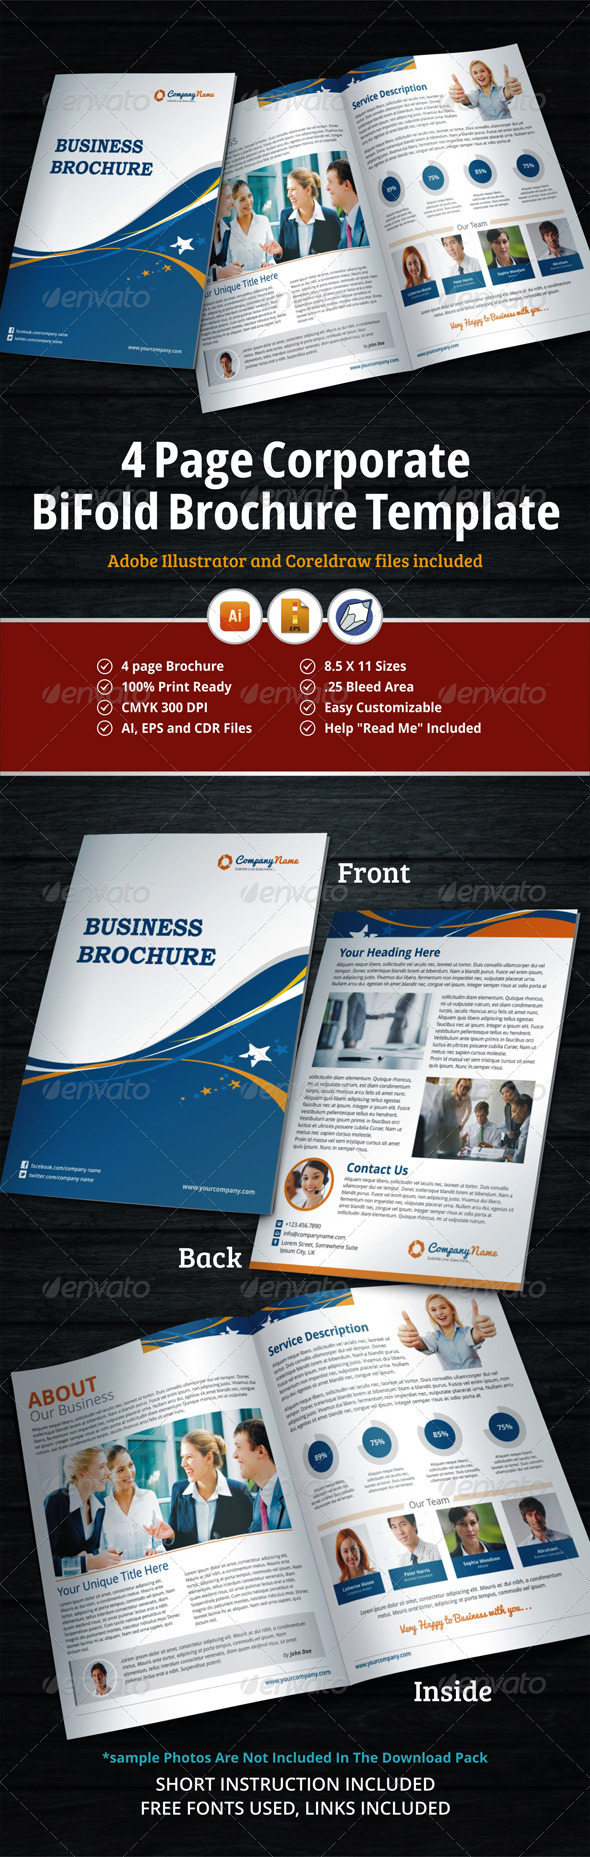 GraphicRiver 4 Page Corporate BiFold Brochure Template 5739660